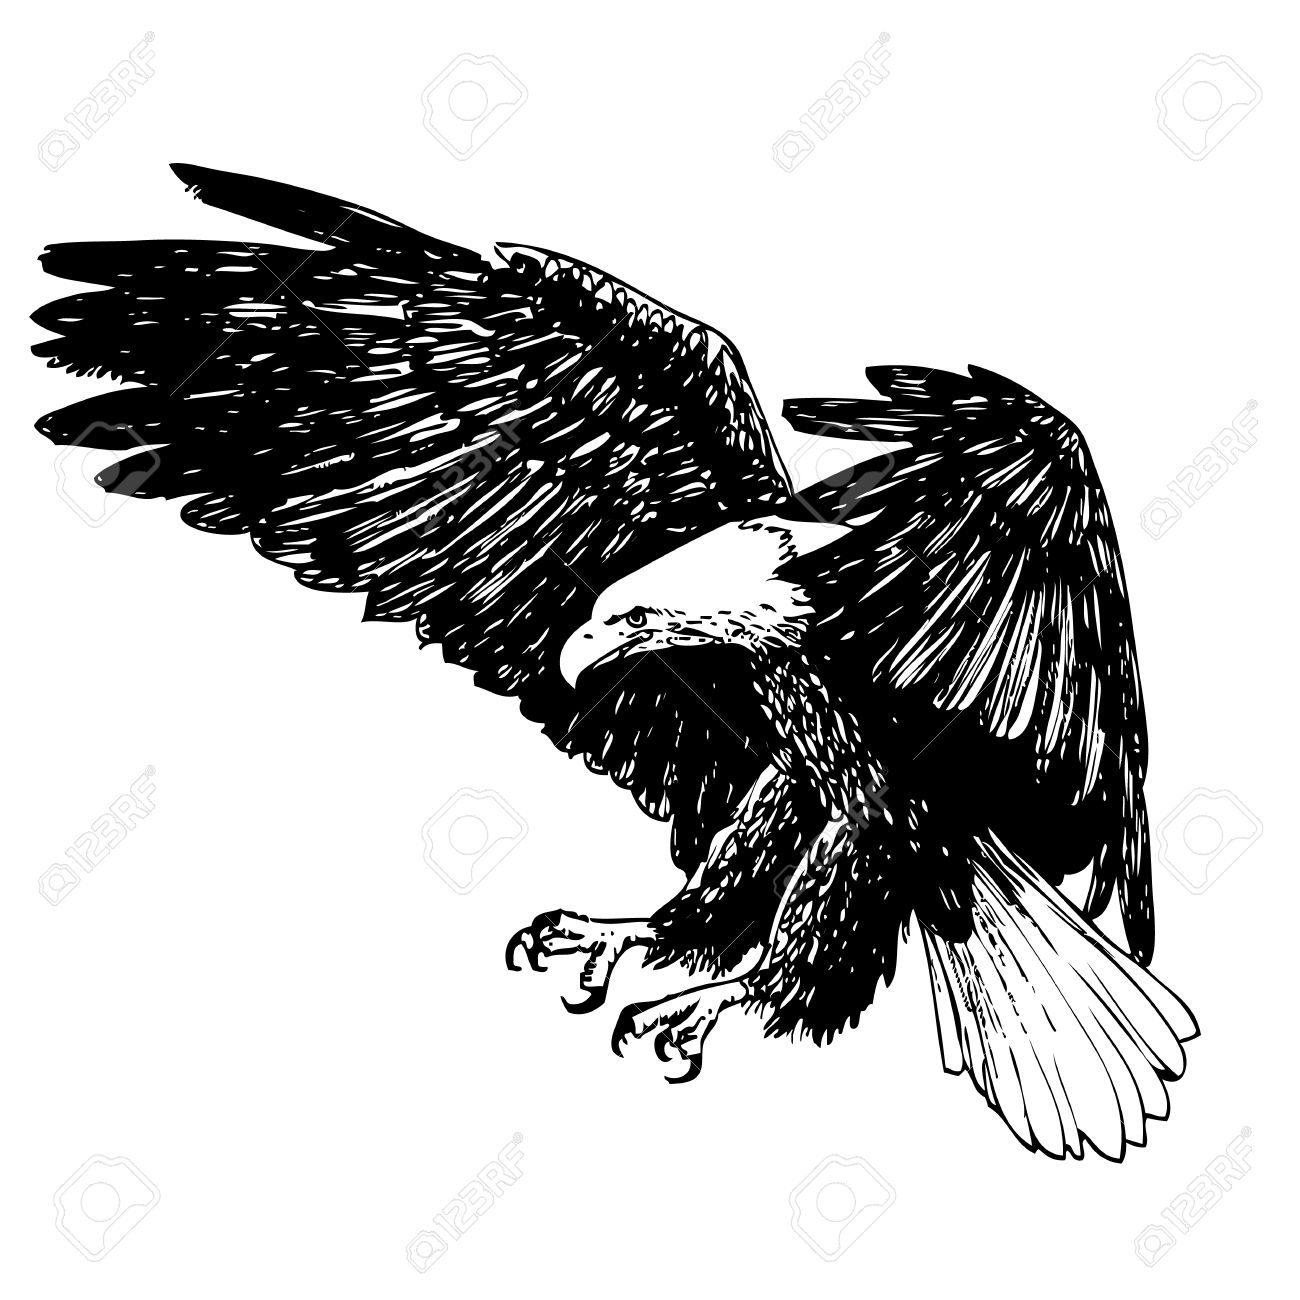 Black and white eagle hand drawn on white background stock vector 44260792